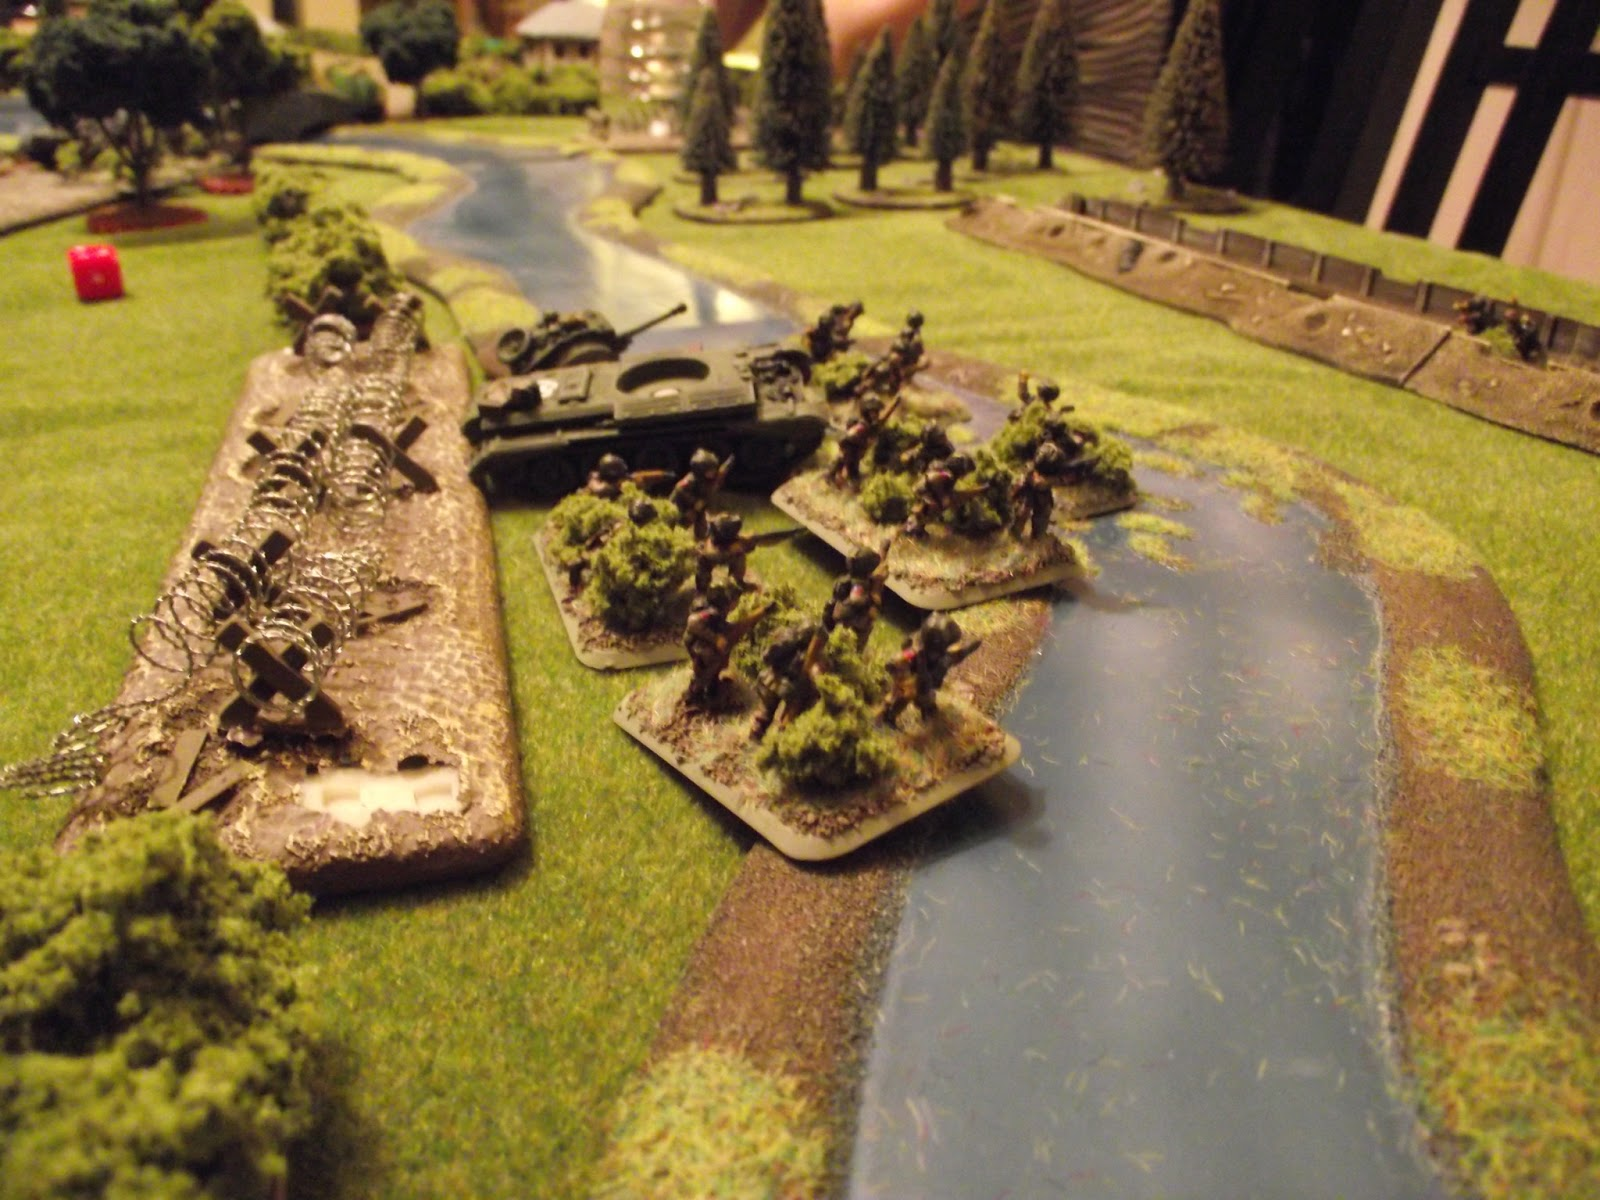 The Paras try to avenge its loss. They cross the barbed wire and try and storm the trench.